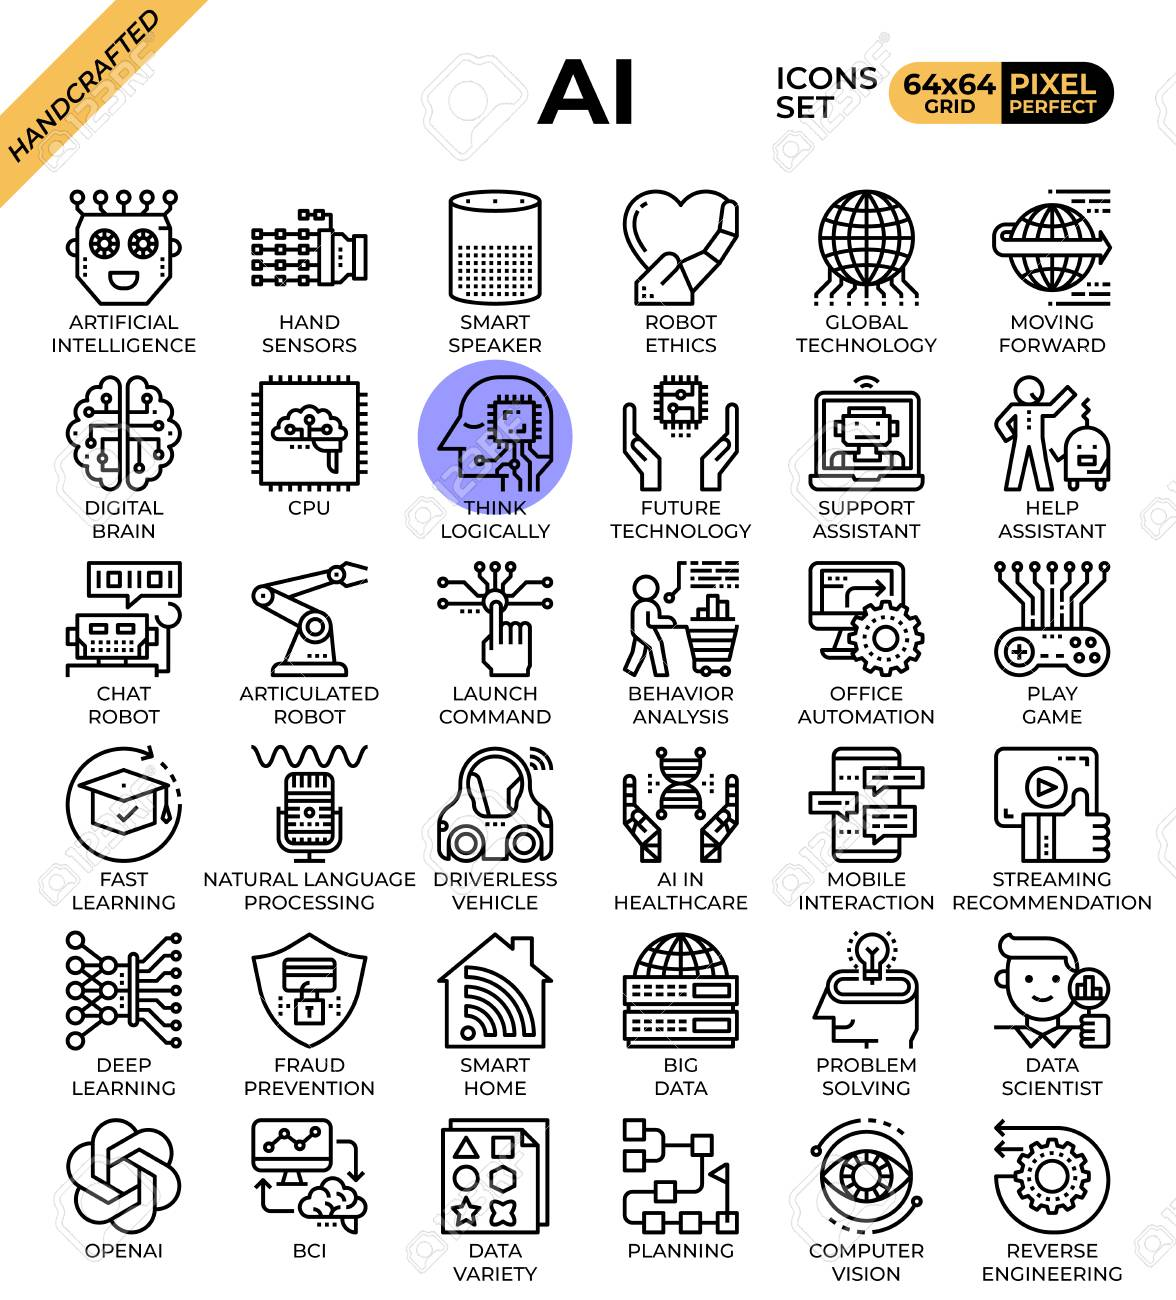 Artificial intelligence (AI) concept icons set in modern line icon style for ui, ux, web, mobile app design, etc. - 126031359